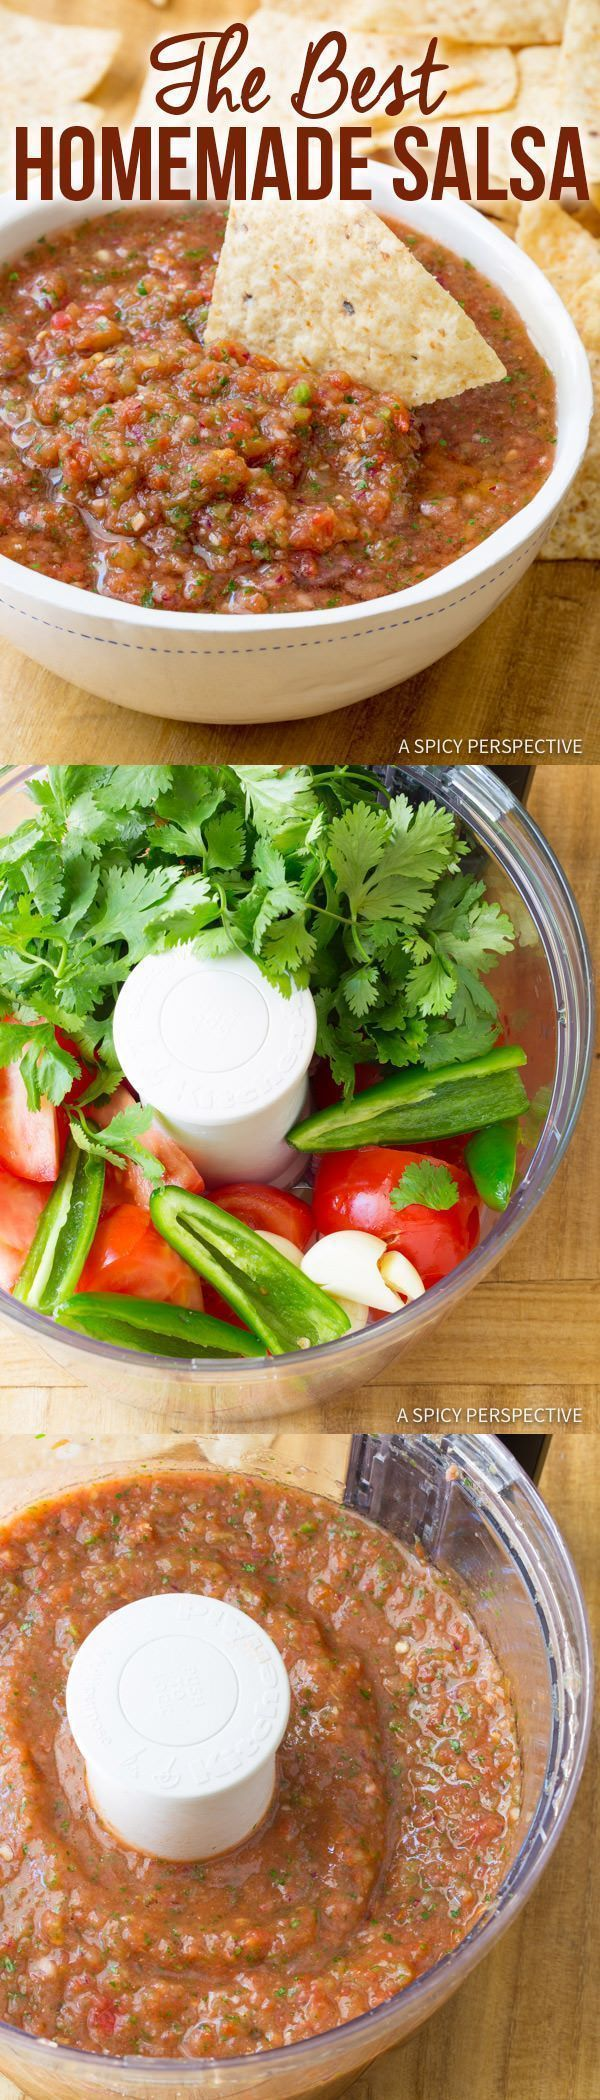 The Best Homemade Salsa Recipe Ever (Quick, Healthy & Delicious!)   ASpicyPerspective...